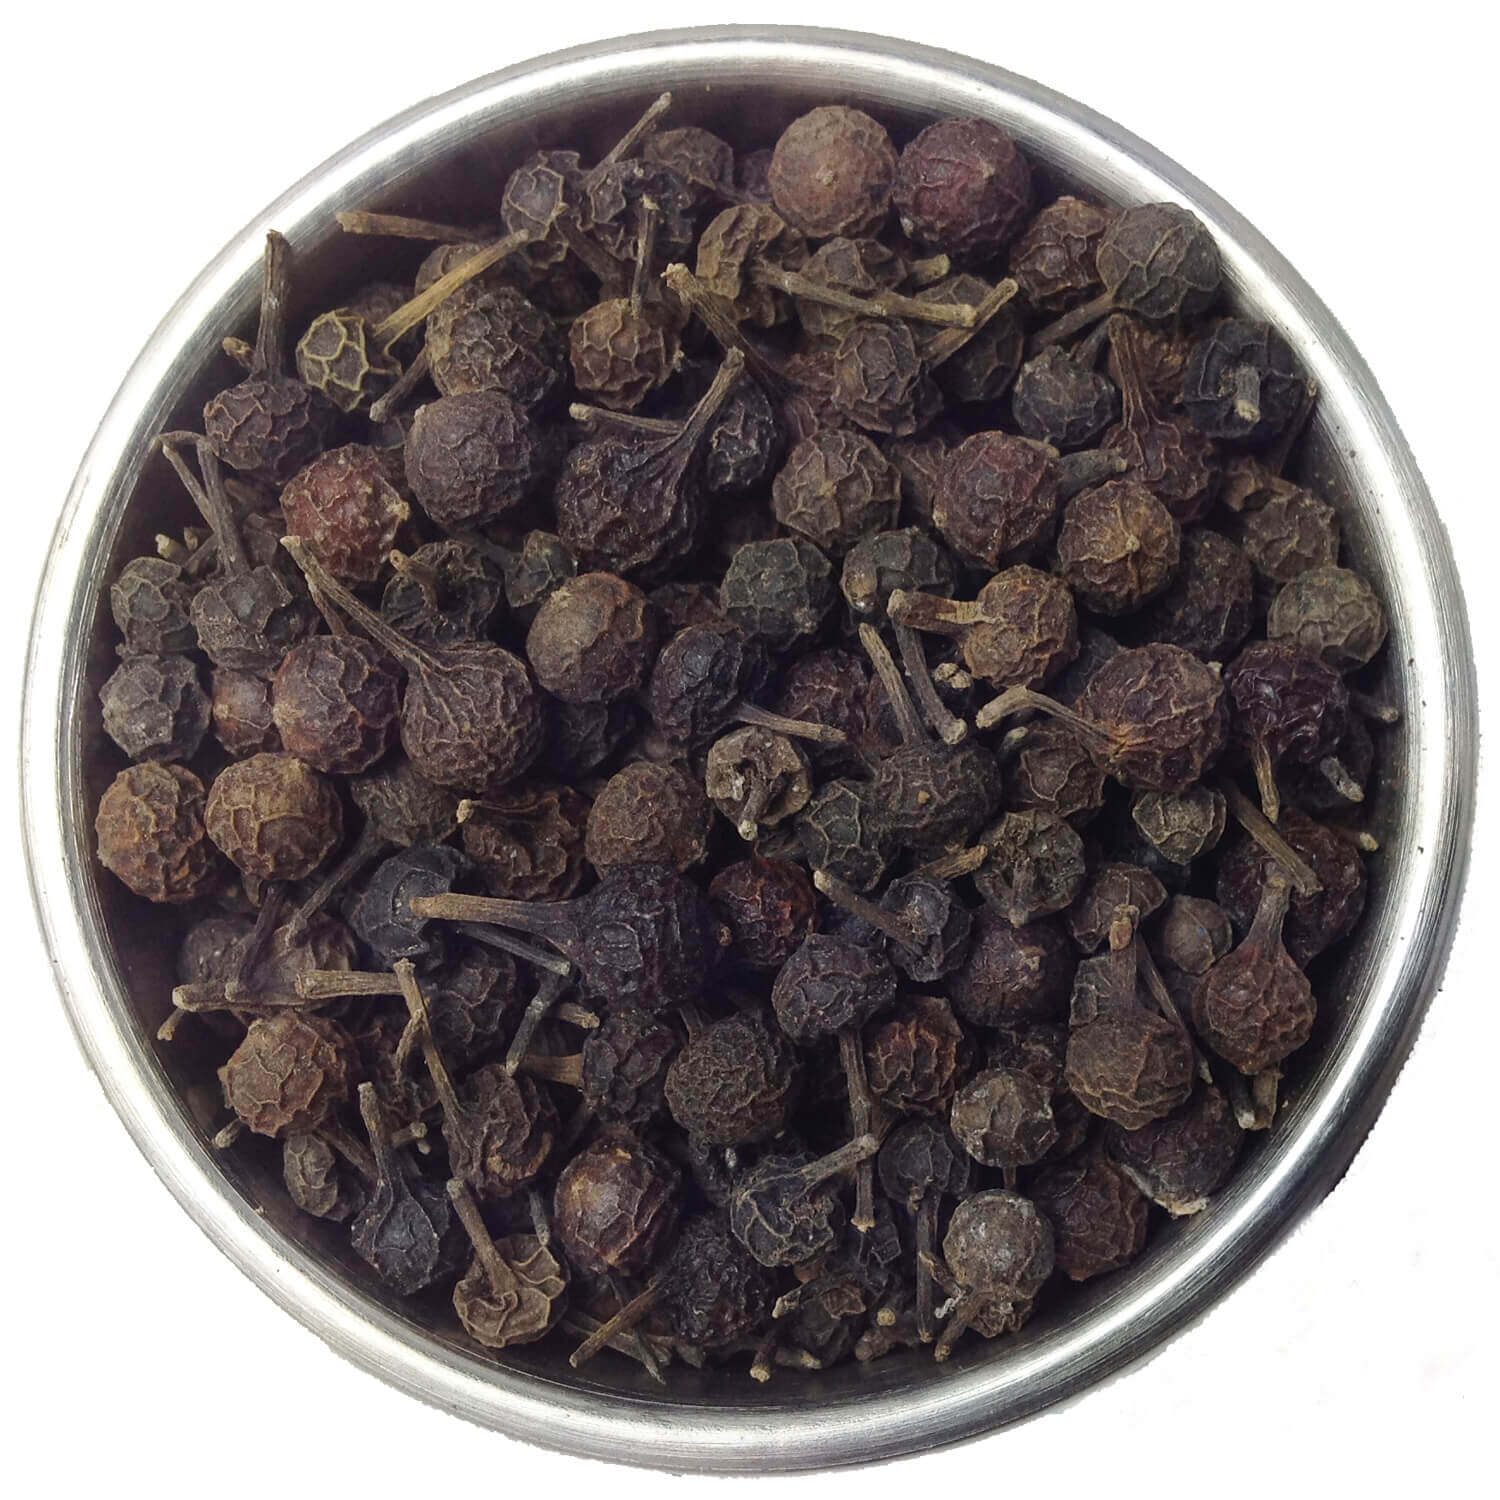 Buy Cubeb Peppercorns Cubebs Comet S Tail Pepper In